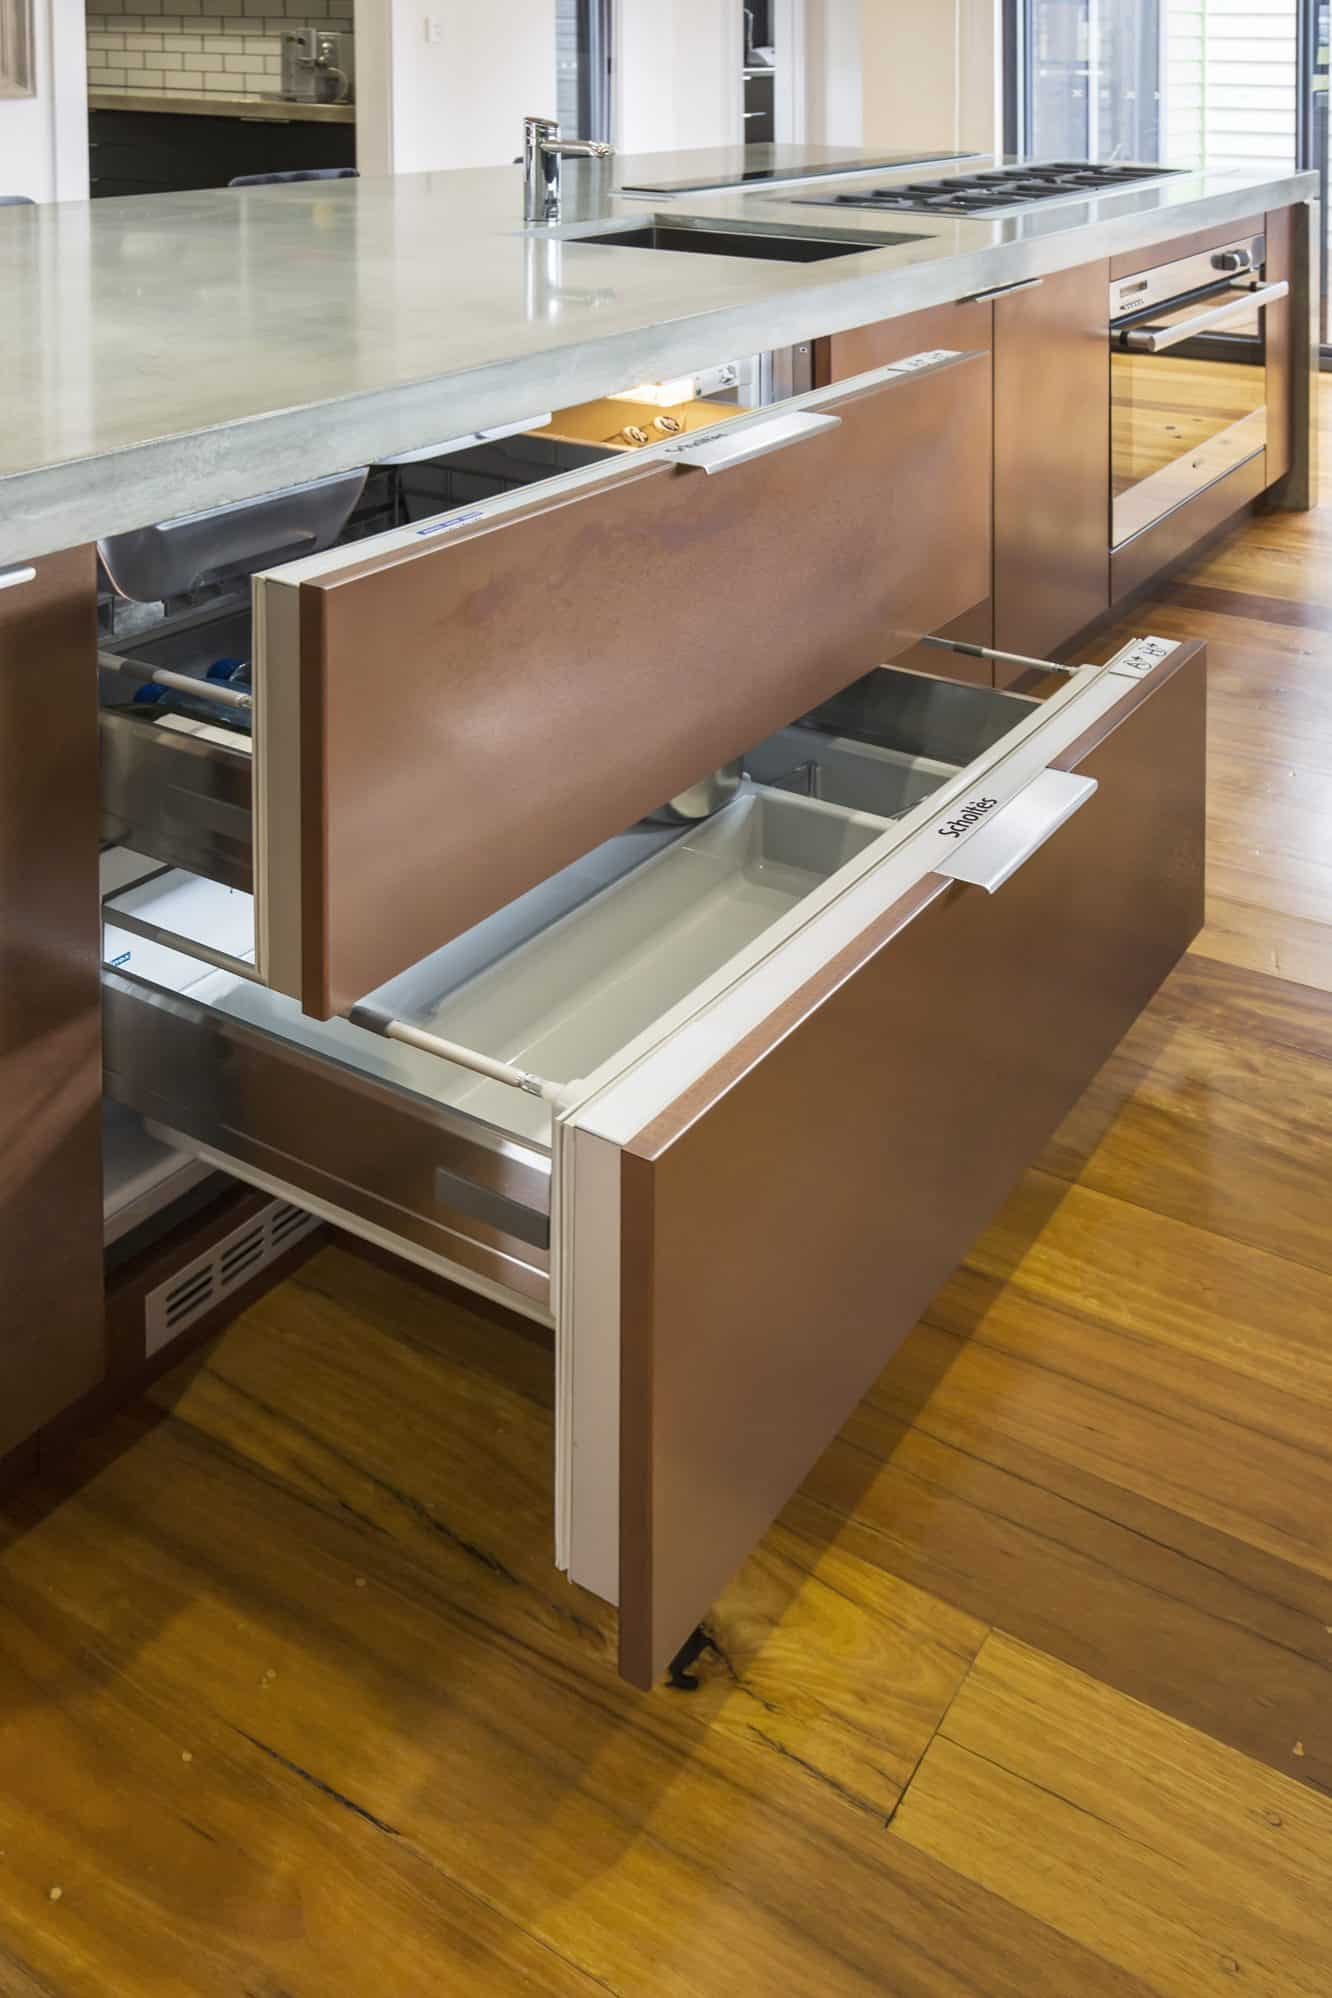 Fridge and freezer drawers from Scholtes